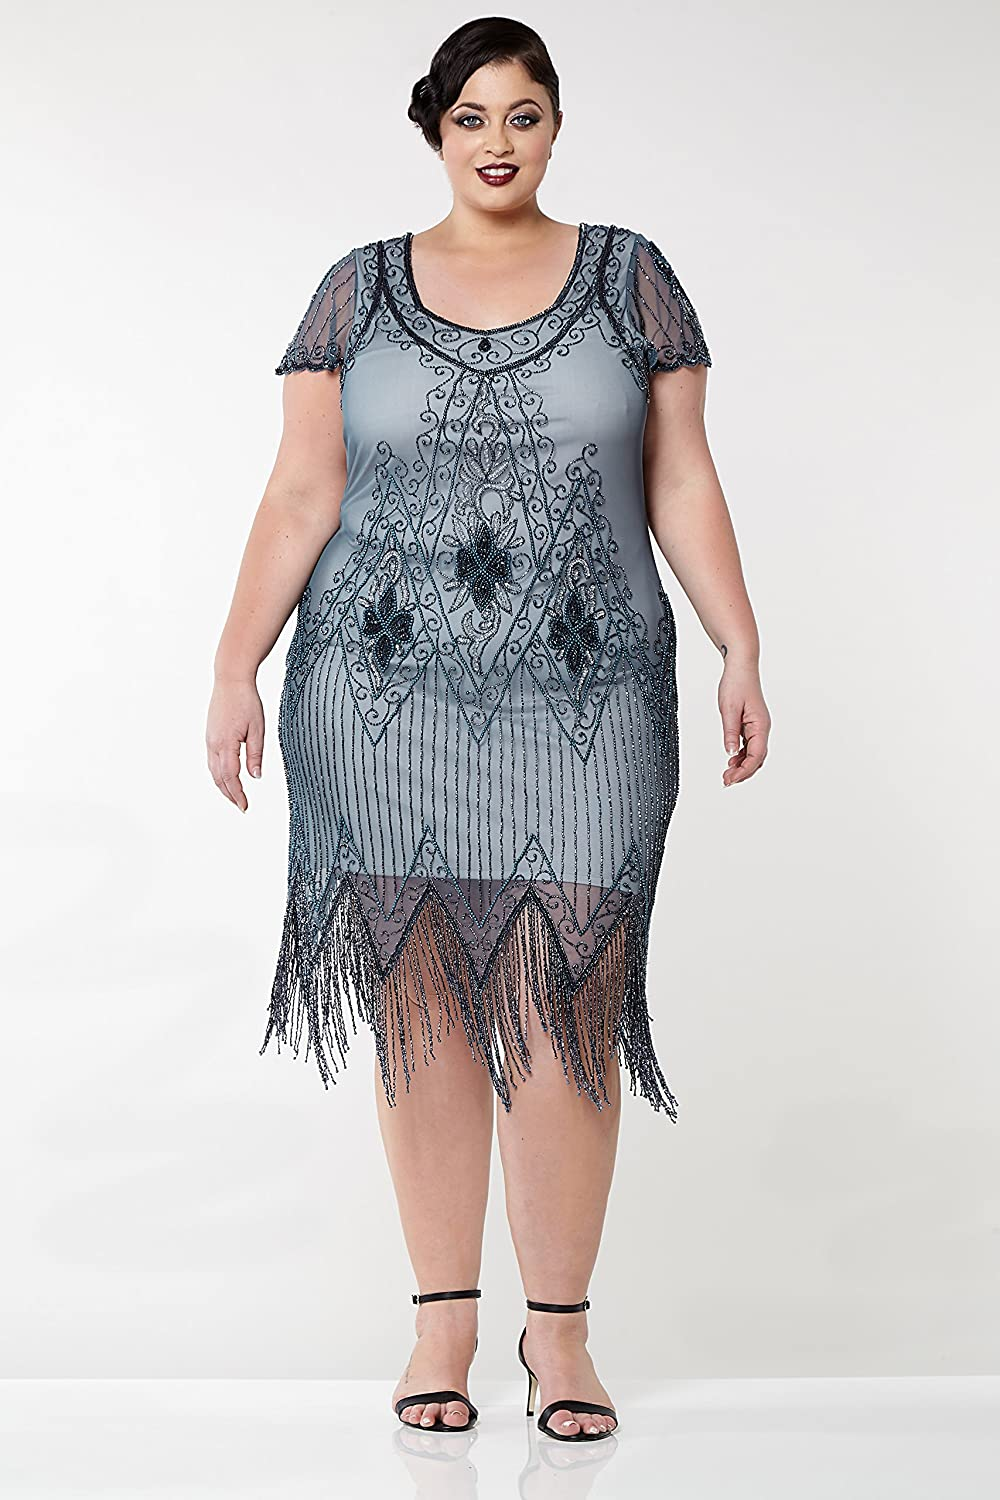 Flapper Dresses & Quality Flapper Costumes gatsbylady london Annette Vintage Inspired Fringe Flapper Dress in Blue Grey $124.86 AT vintagedancer.com